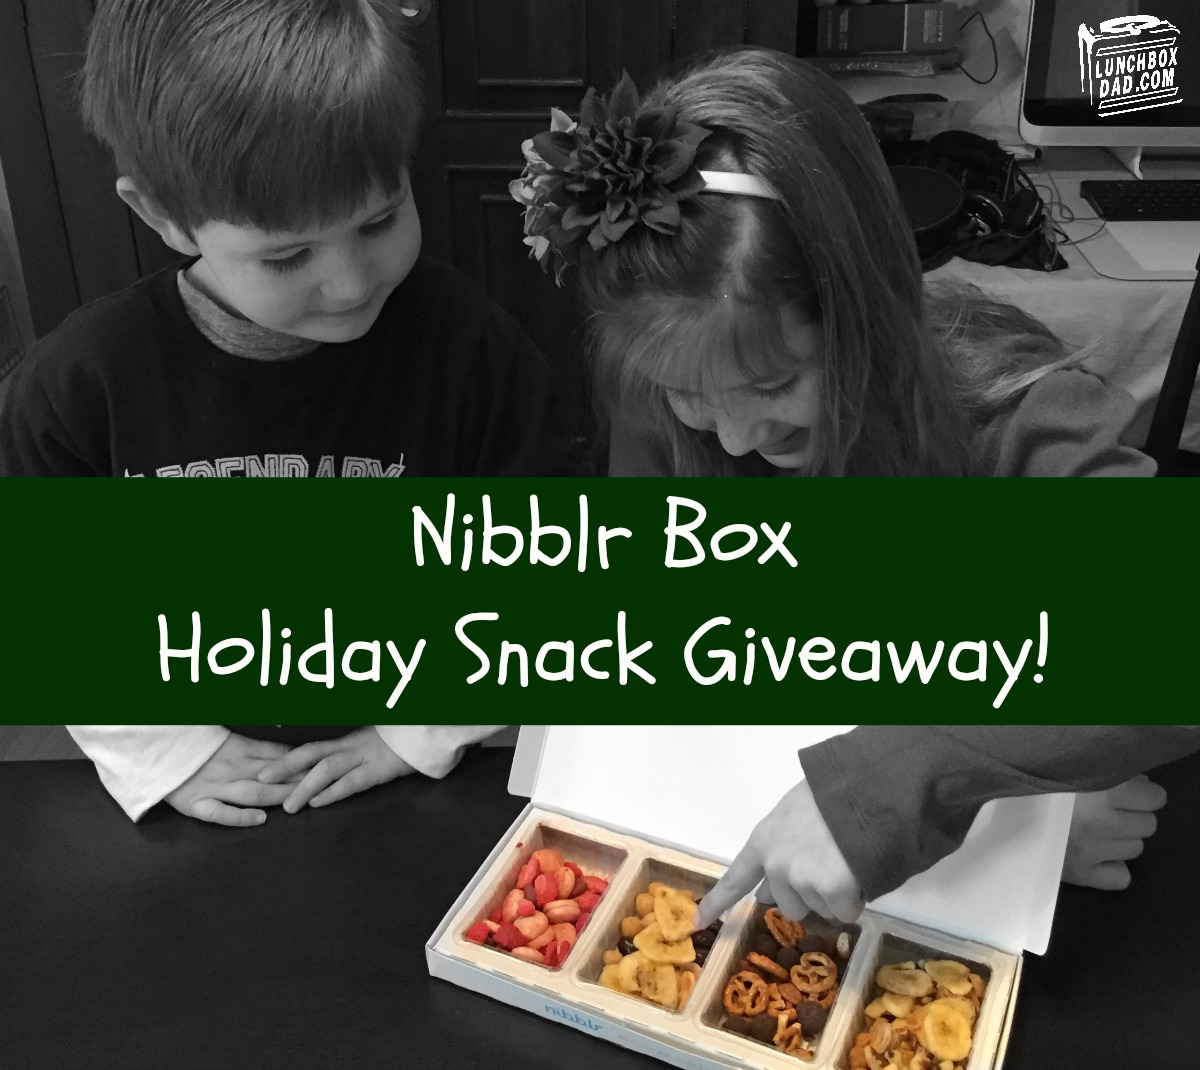 Nibblr Snack Giveaway